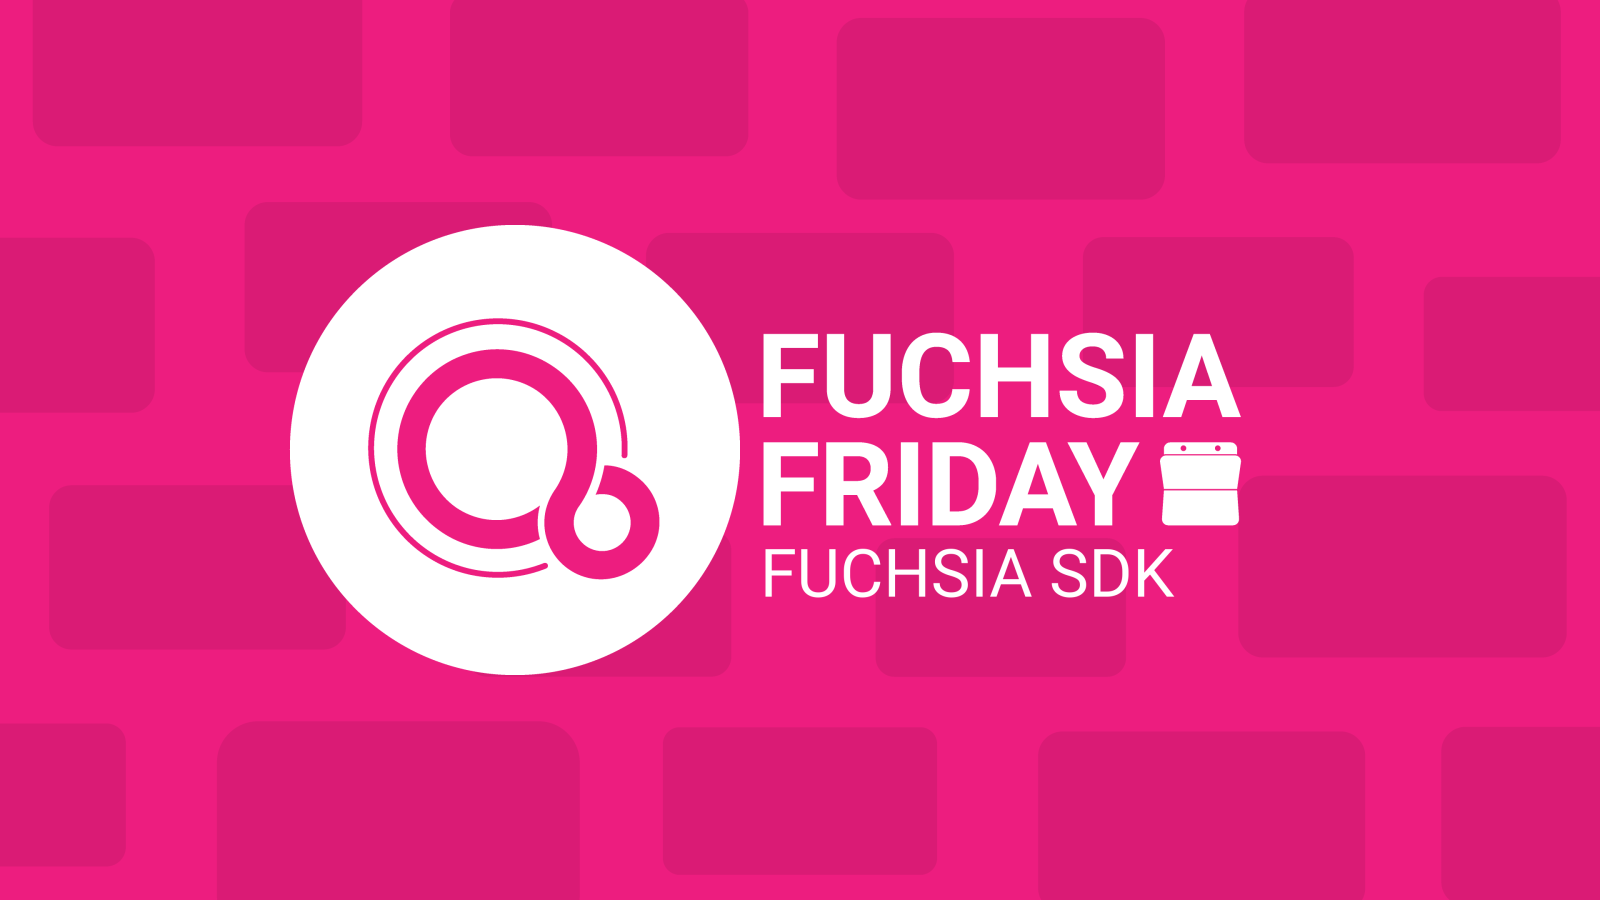 Fuchsia Friday: A first look at the Fuchsia SDK, which you